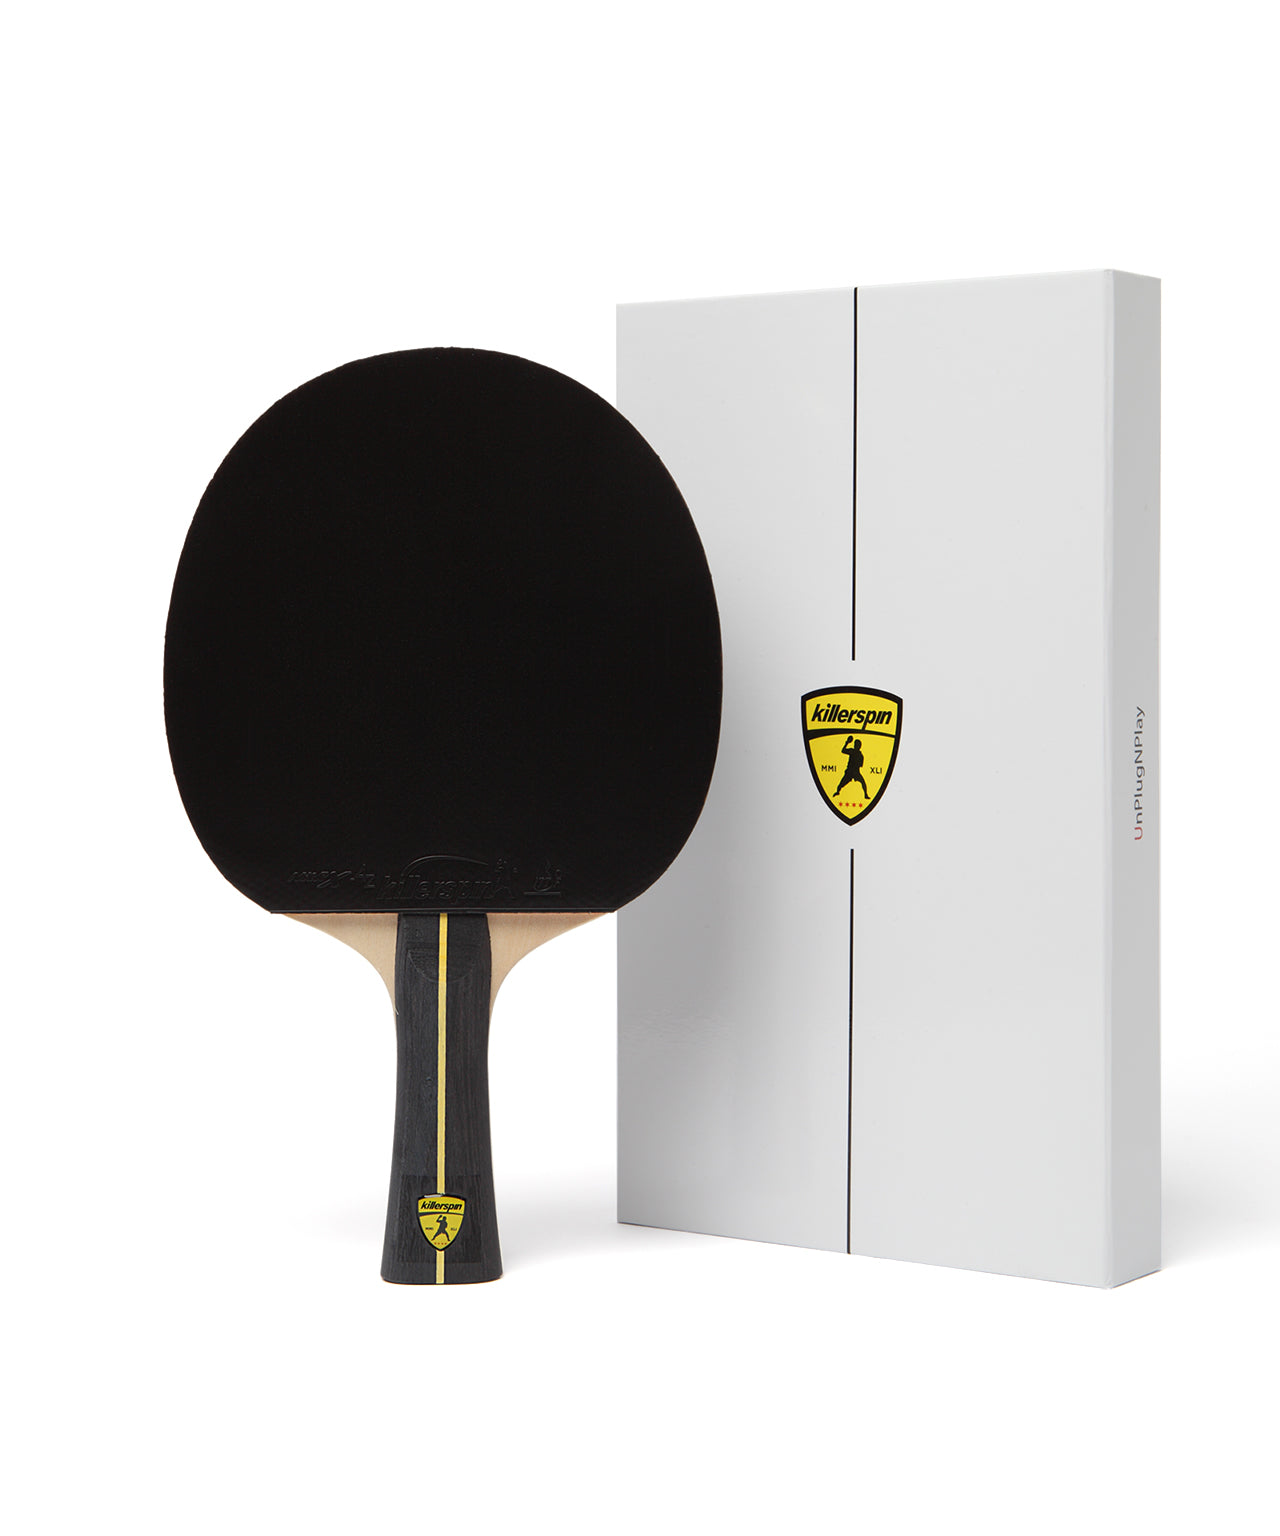 Killerspin Ping Pong Paddle Jet Black